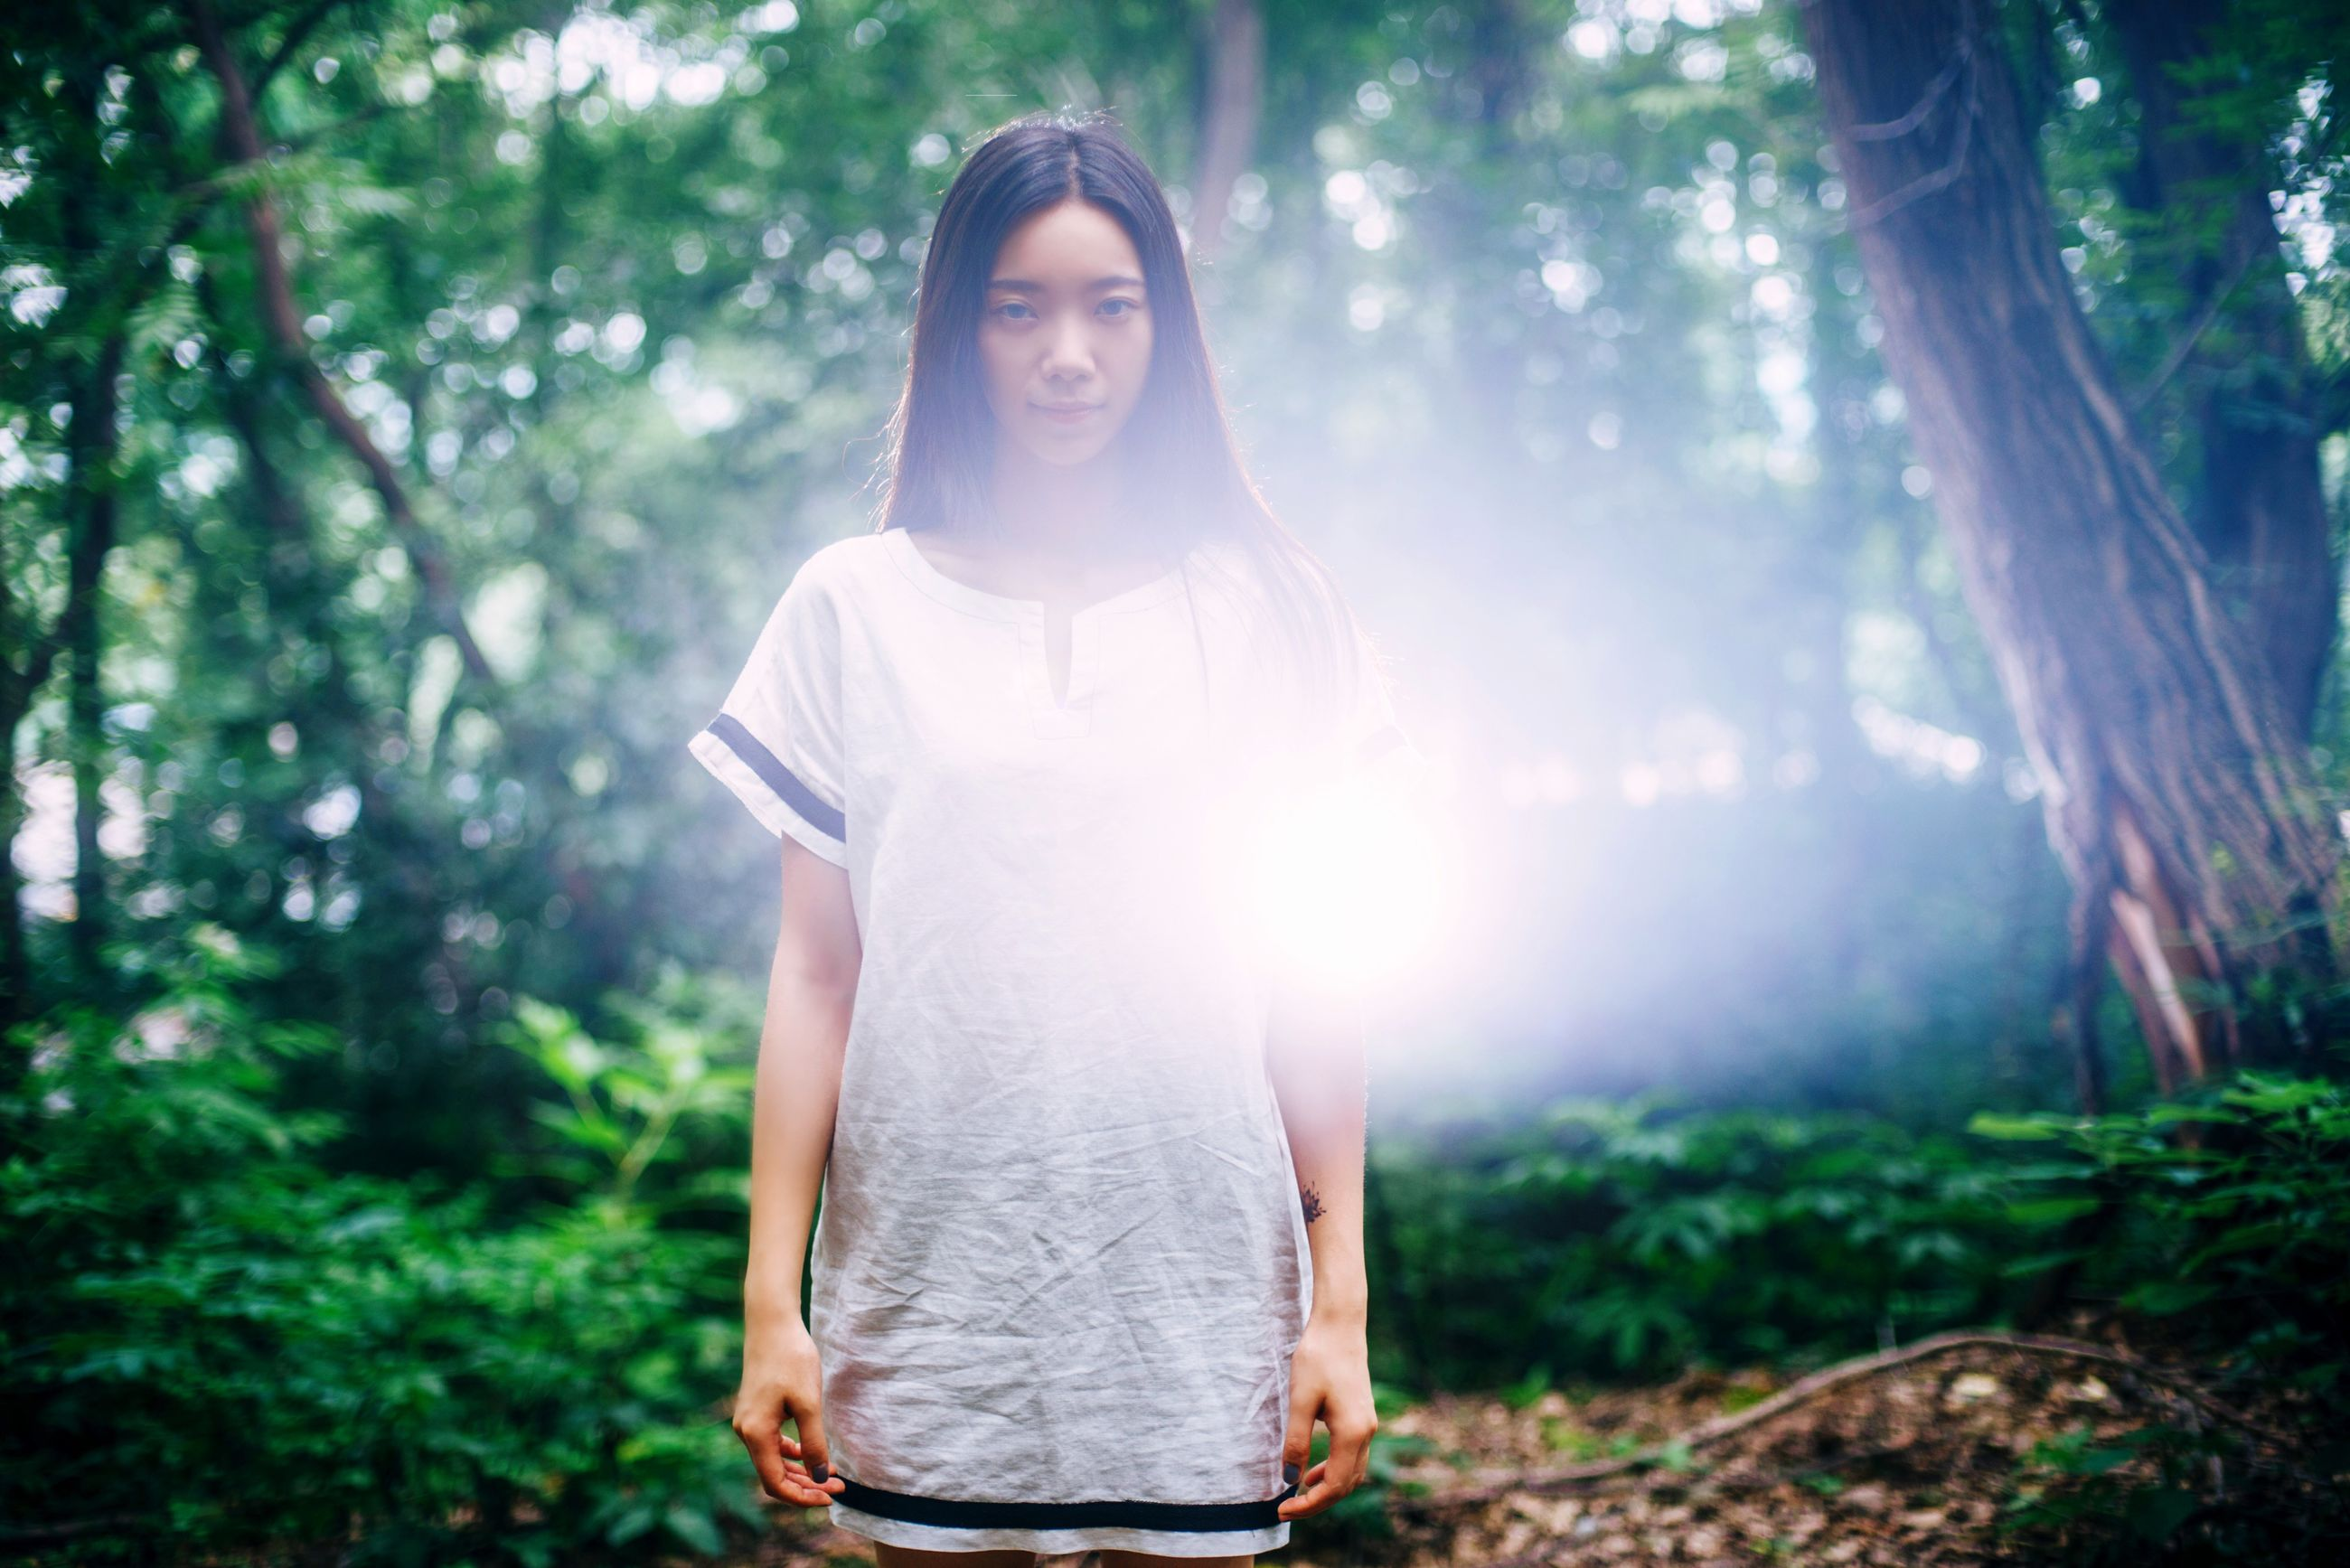 young adult, lifestyles, tree, leisure activity, forest, front view, person, casual clothing, young women, portrait, looking at camera, sunlight, sunbeam, standing, lens flare, focus on foreground, three quarter length